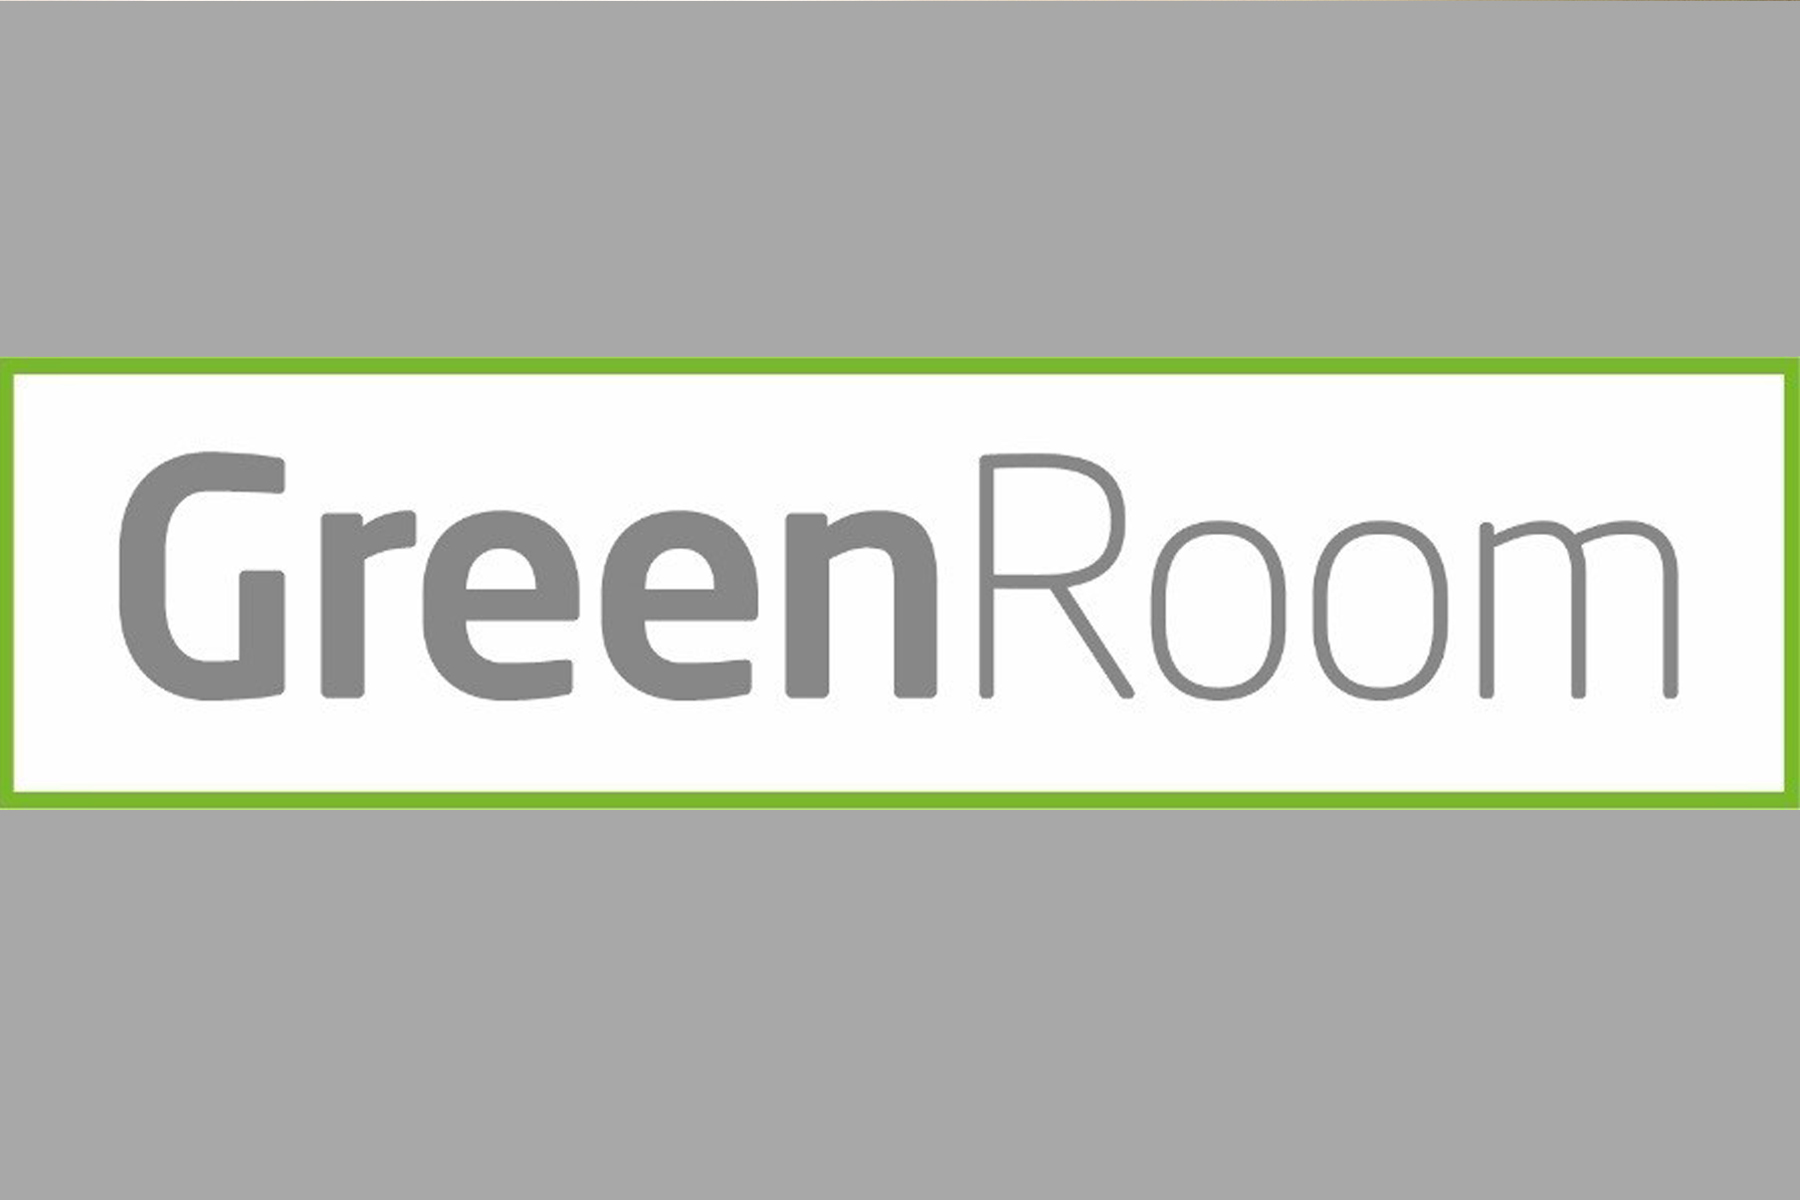 Learn about Specsavers 'Green Room'